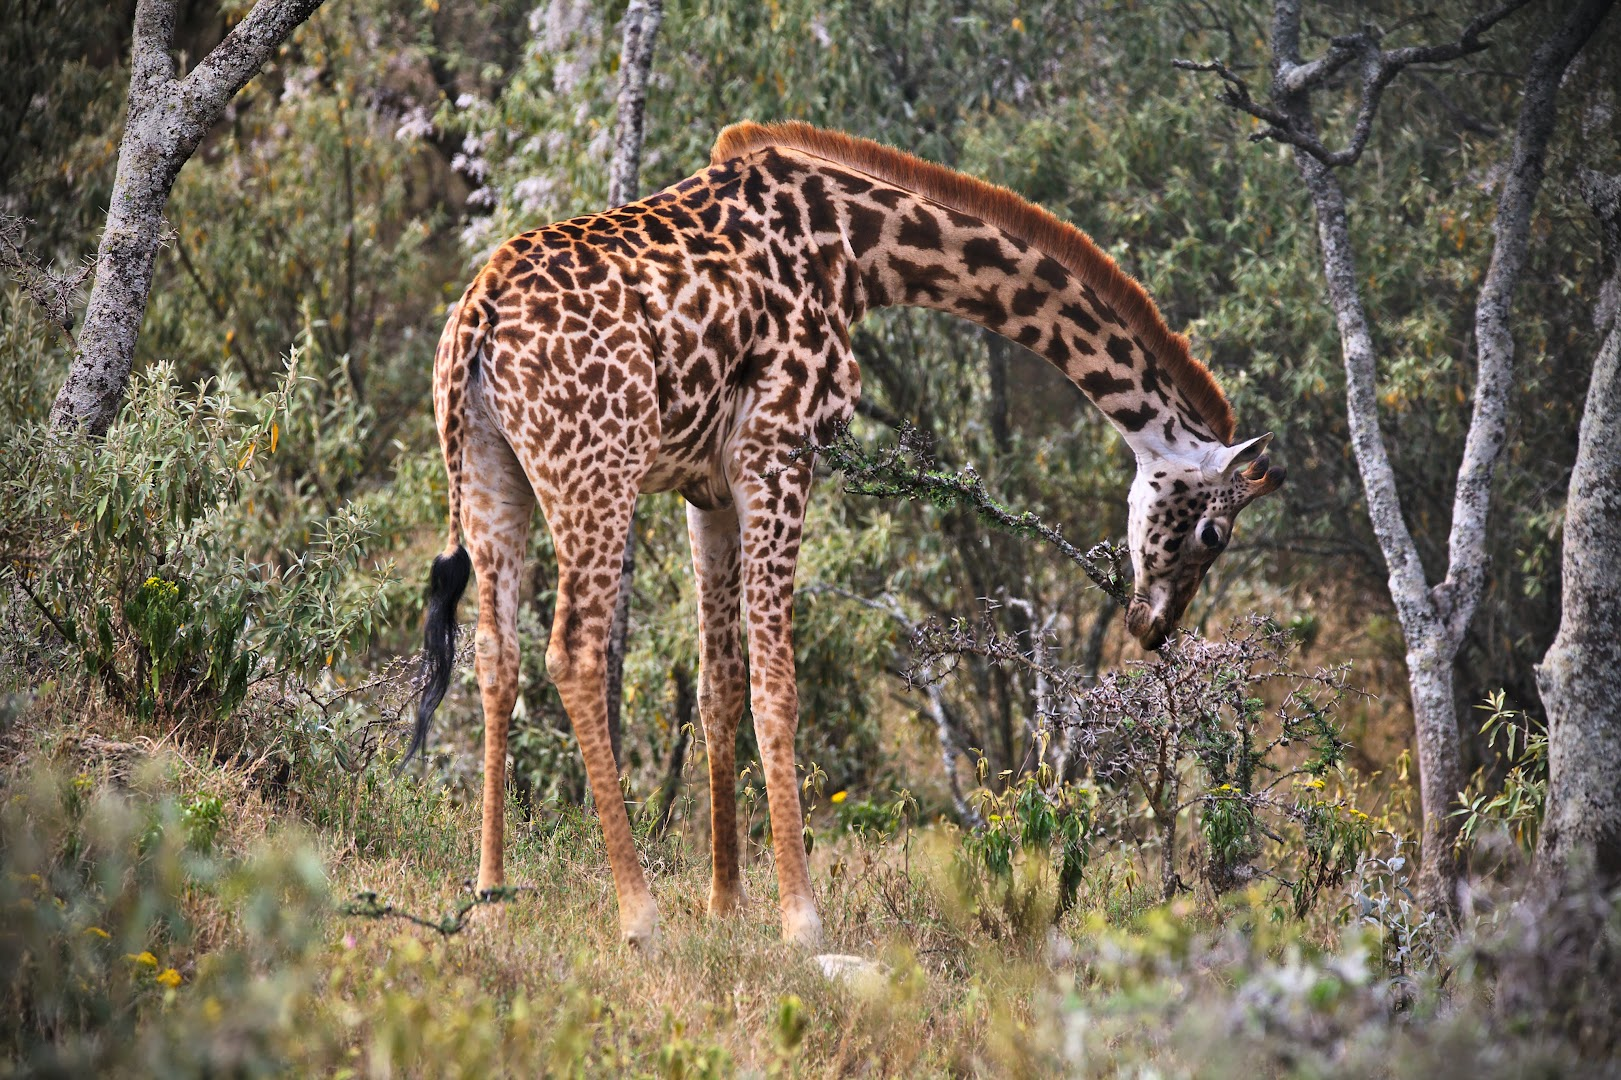 The first giraffe was hiding well in the woods